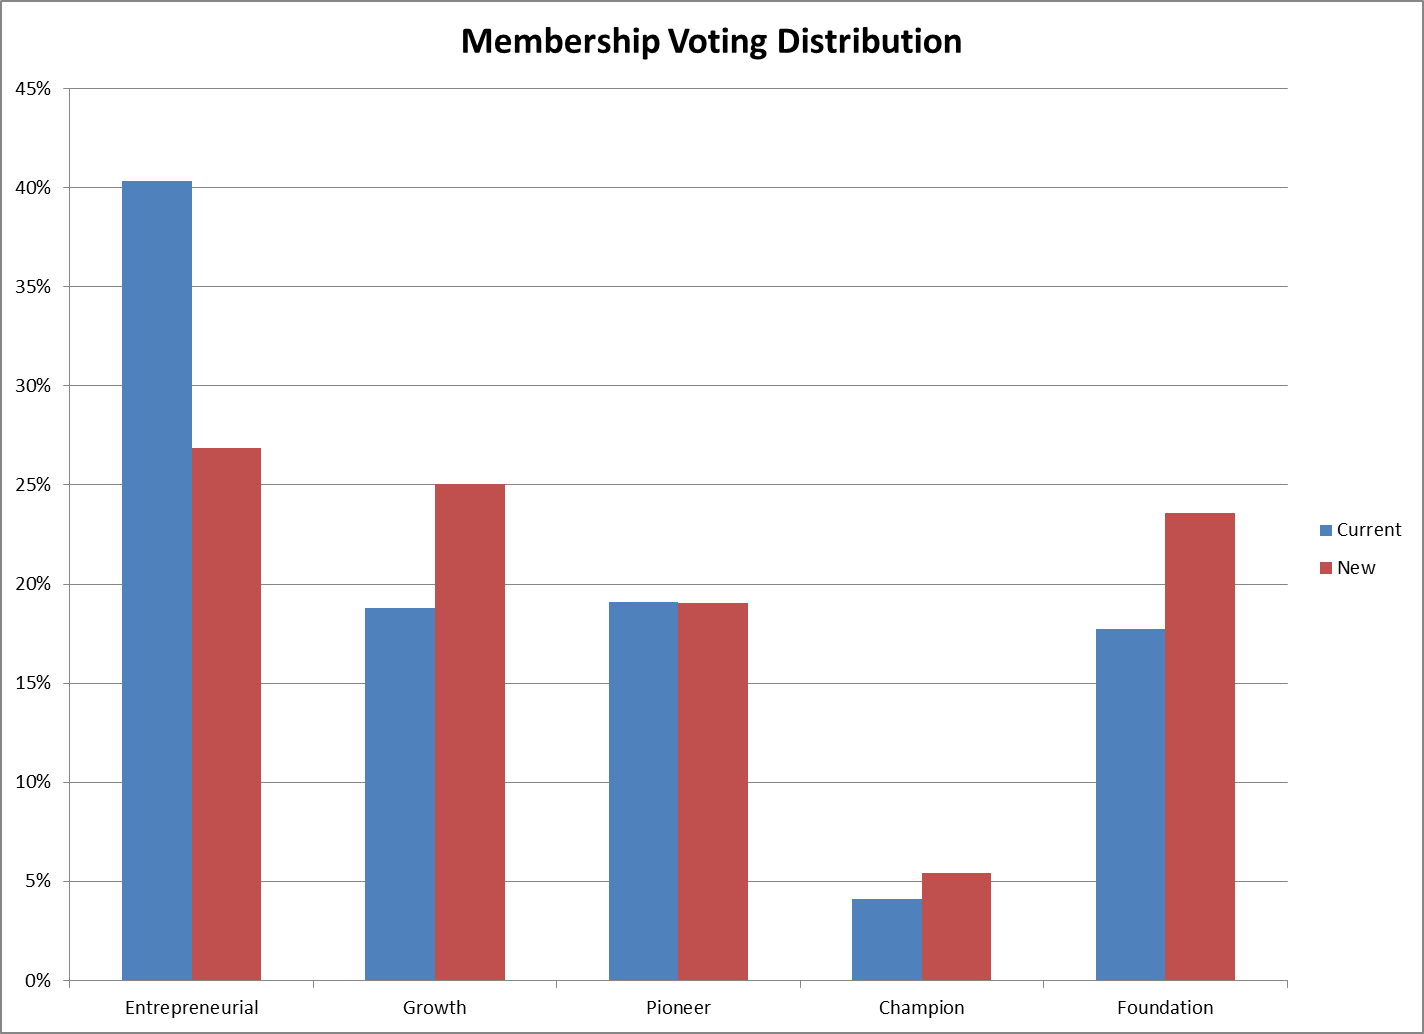 Membership Voting Distribution